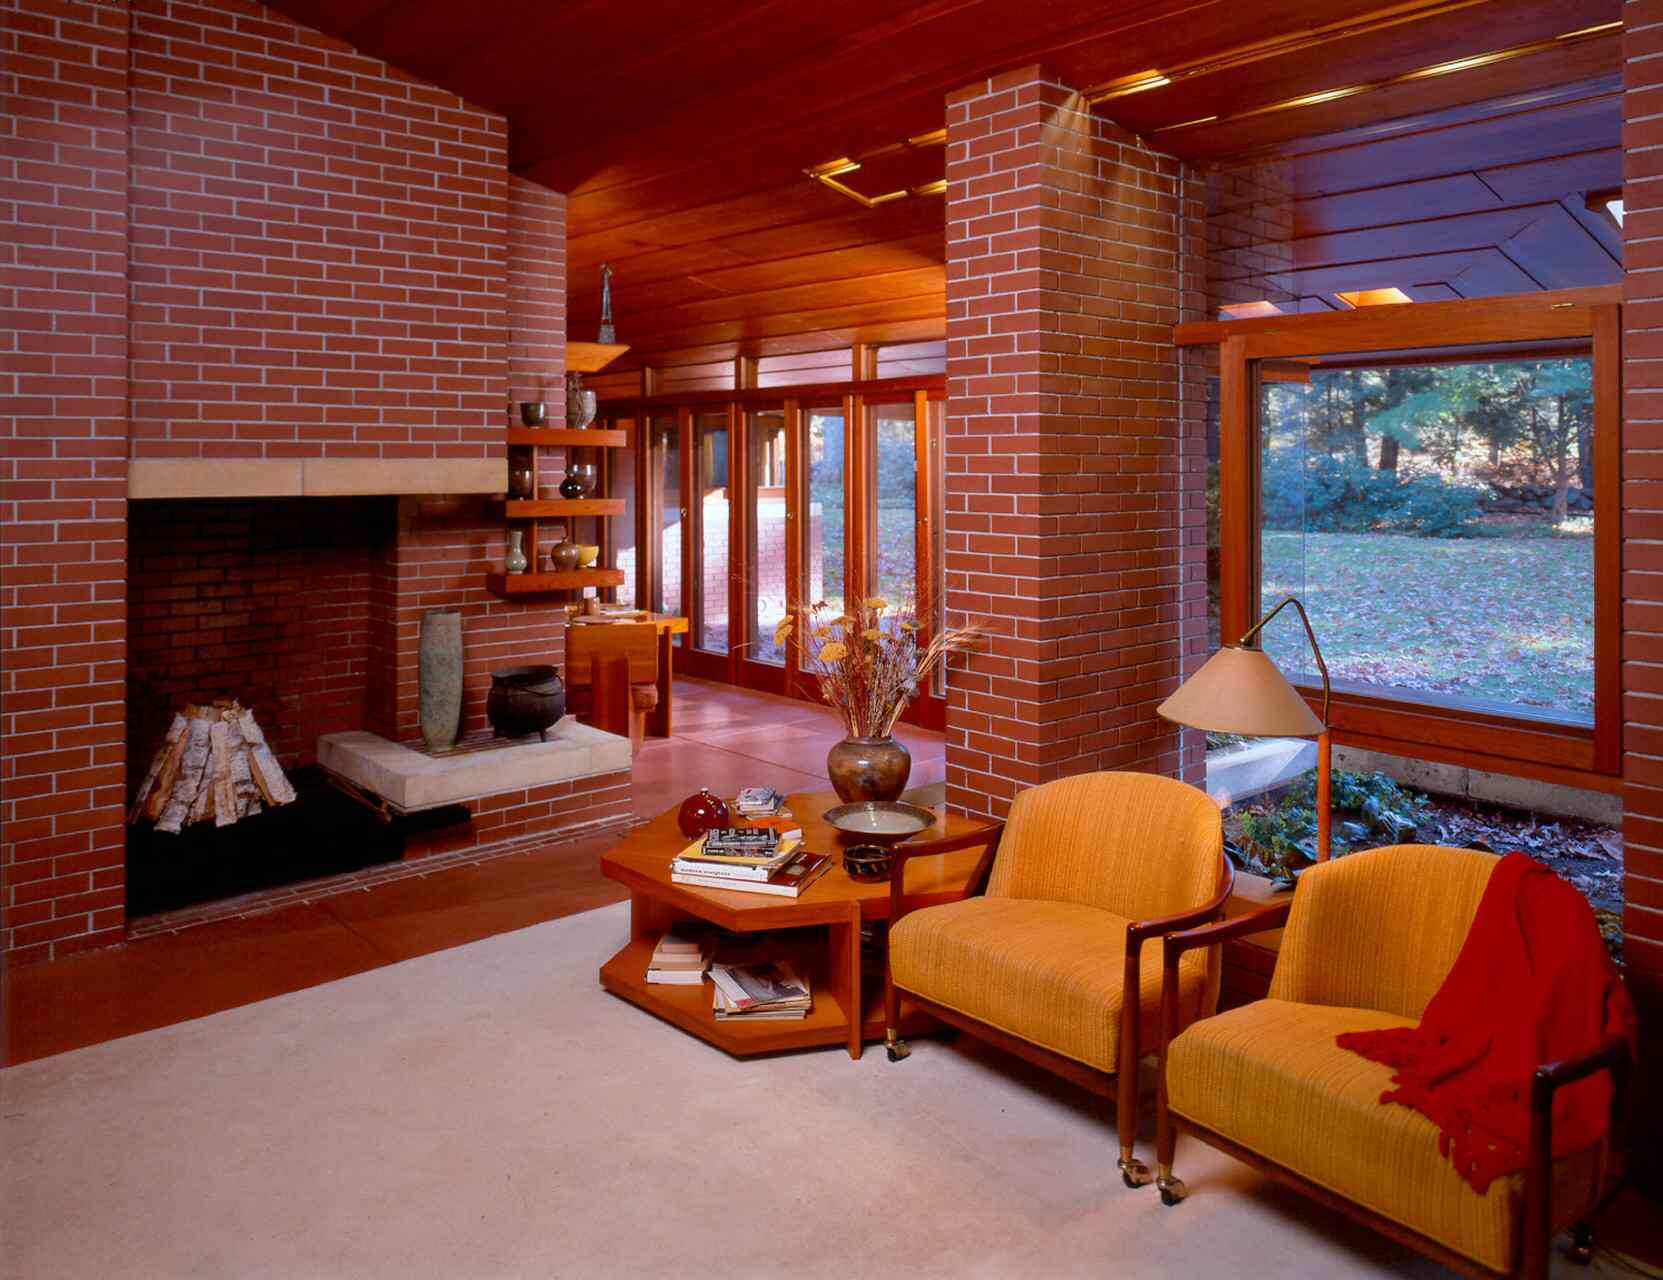 The furnishings are part of the architectural design at the Zimmerman house by Frank Lloyd Wright